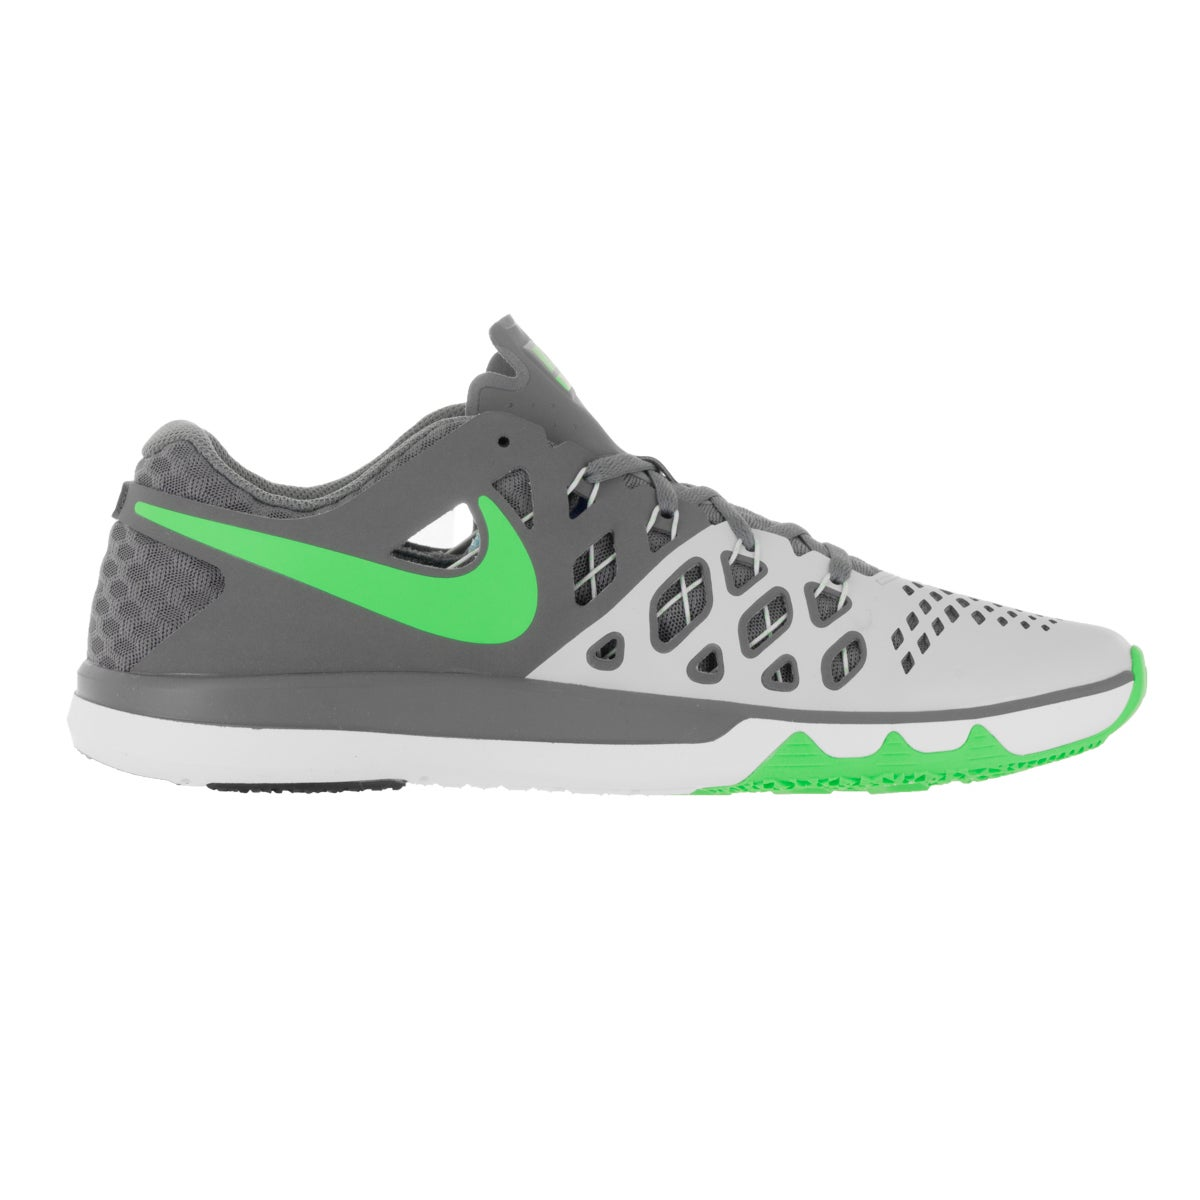 0baec0ef702c Shop Nike Men s Train Speed 4 Pure Platinum Rage Green Training Shoe - Free  Shipping Today - Overstock - 13392237